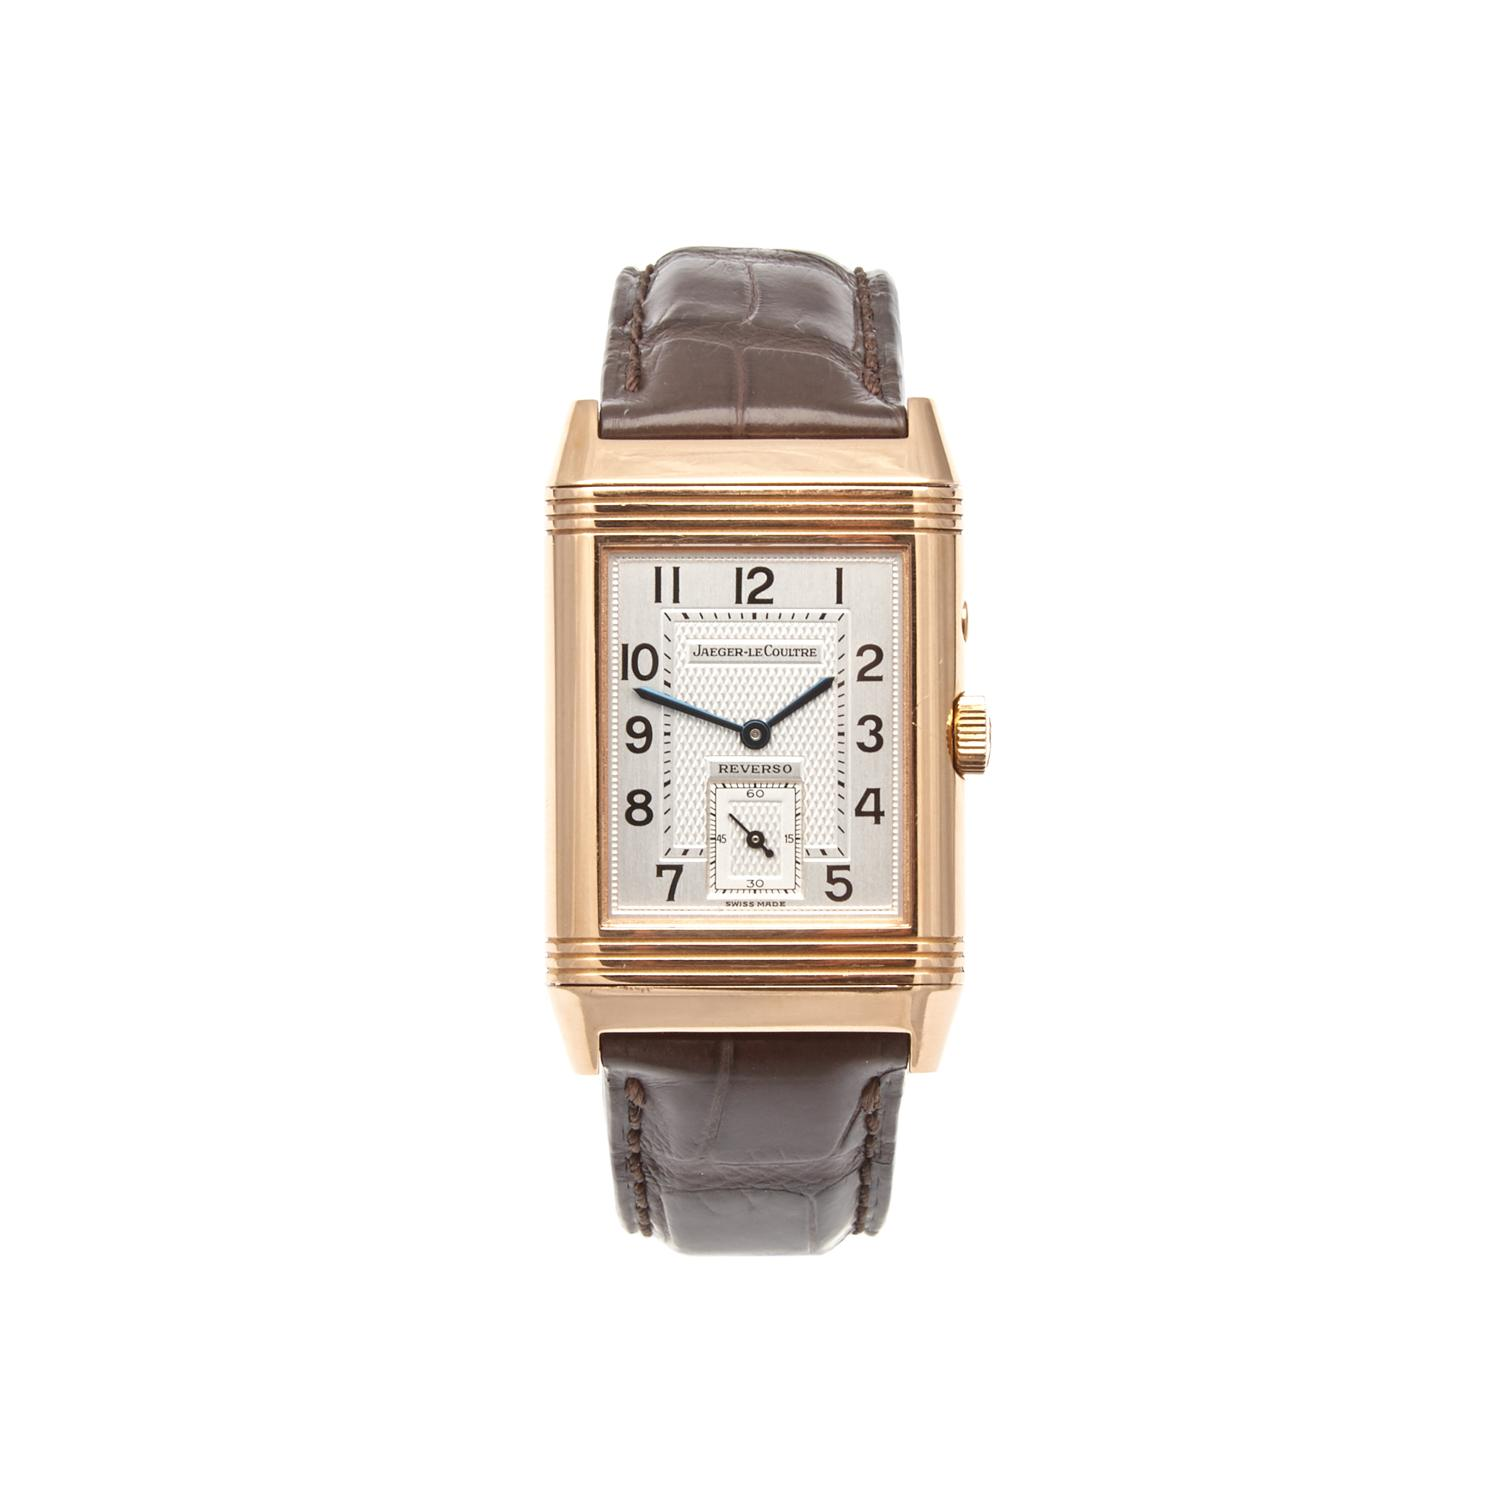 60cb23185695 Lot 620 of 170  A Rose Gold Jaeger-LeCoultre Reverso Duoface Wristwatch